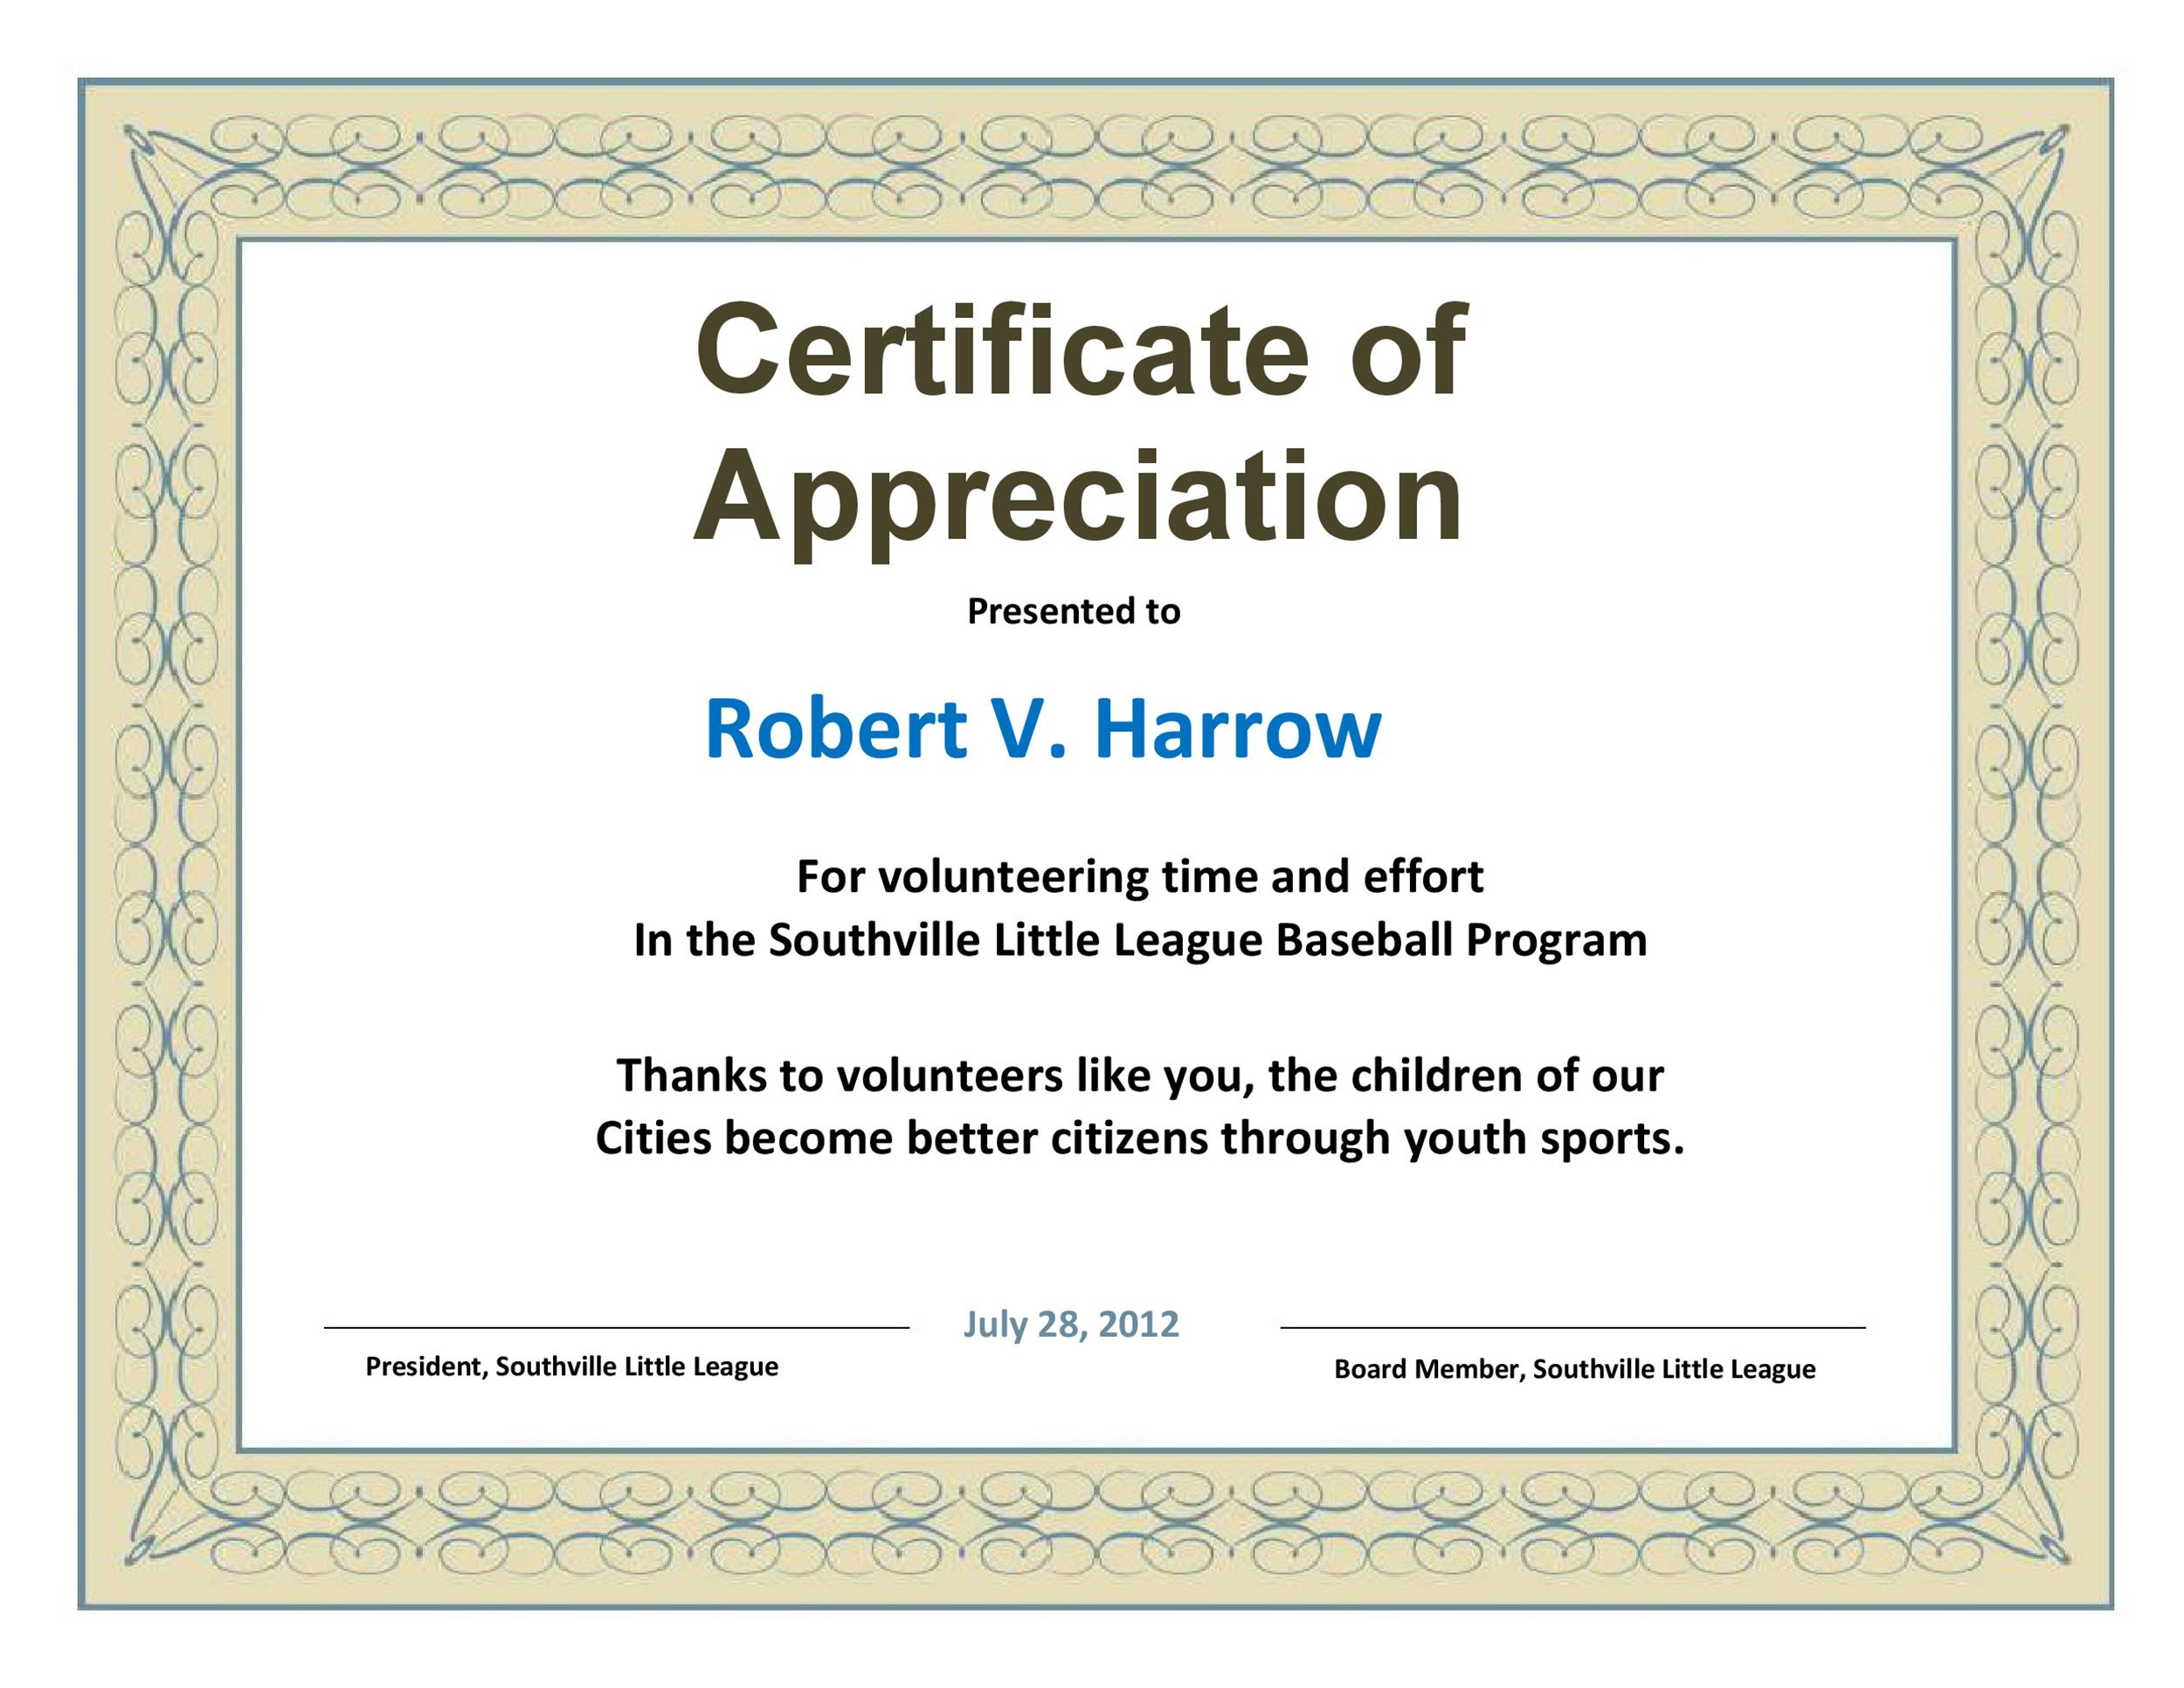 30 Free Certificate of Appreciation Templates and Letters - Certificate Of Appreciation Words